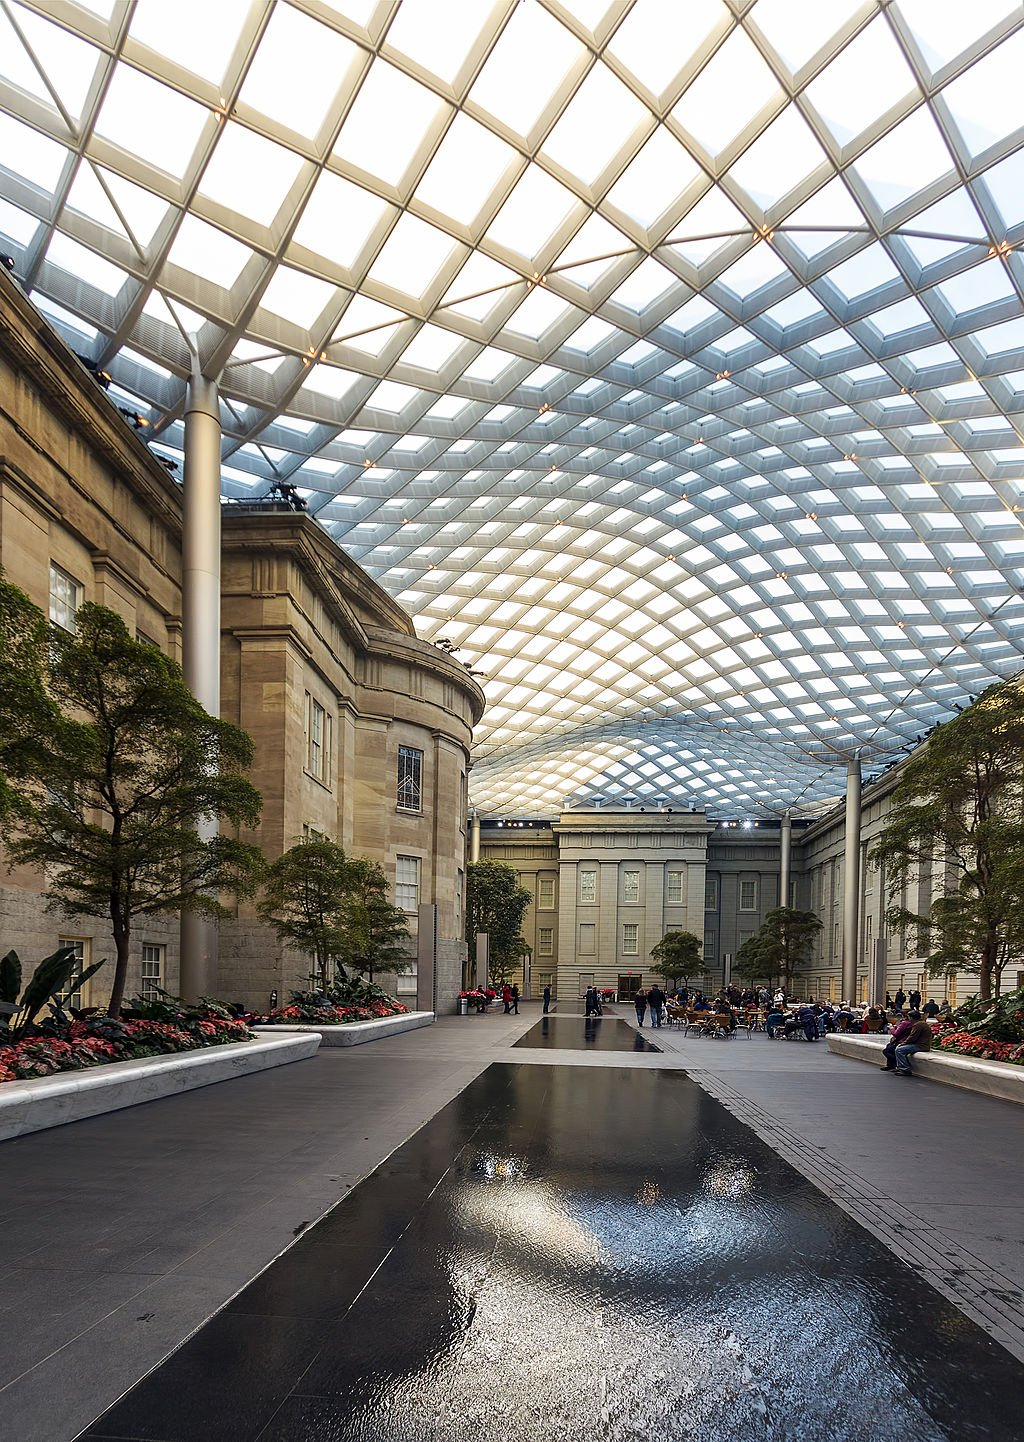 The Robert and Arlene Kogod Courtyard is a favorite spot for visitors both the National Portrait Gallery and Smithsonian American Art Museum. Photo by Acroterion, Wikimedia Commons.